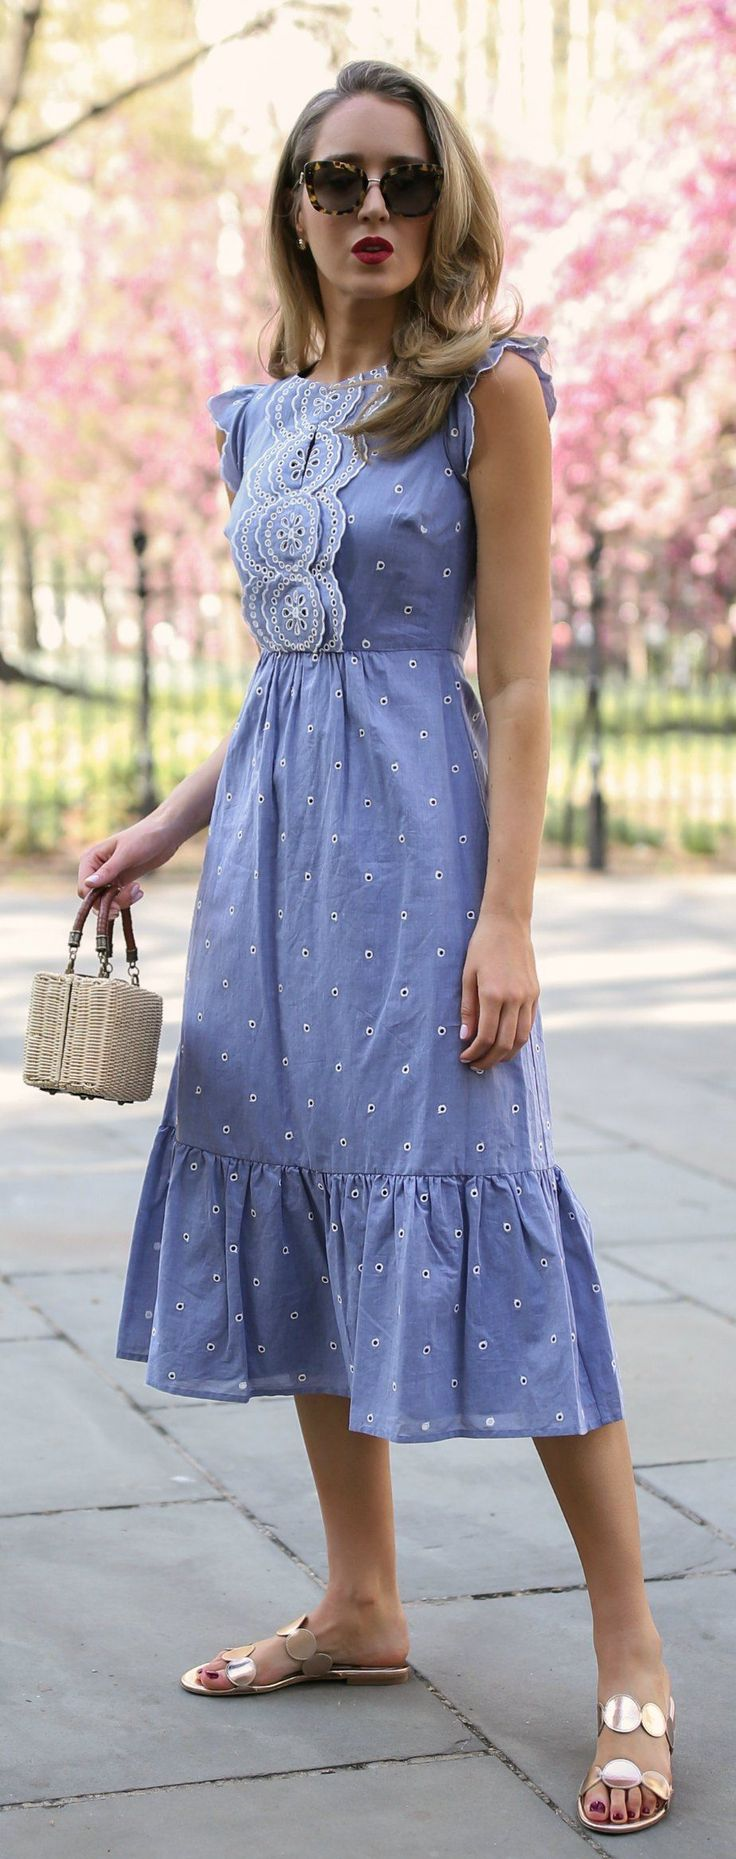 30 Dresses in 30 Days: Garden Party // Light blue contrast broderie anglaise embroidery midi dress, light wicker box bag, metallic dot slides, cat eye sunglasses {Boden, prada, what to wear, summer outfit, spring style, classic}